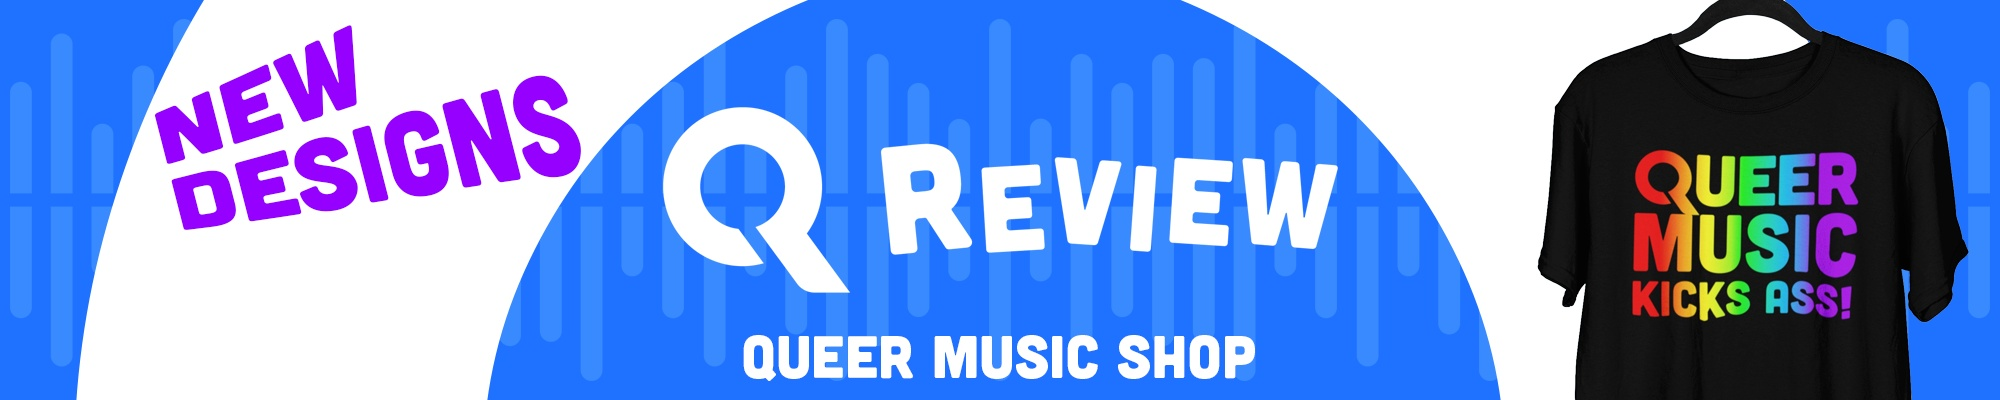 QReview Cover